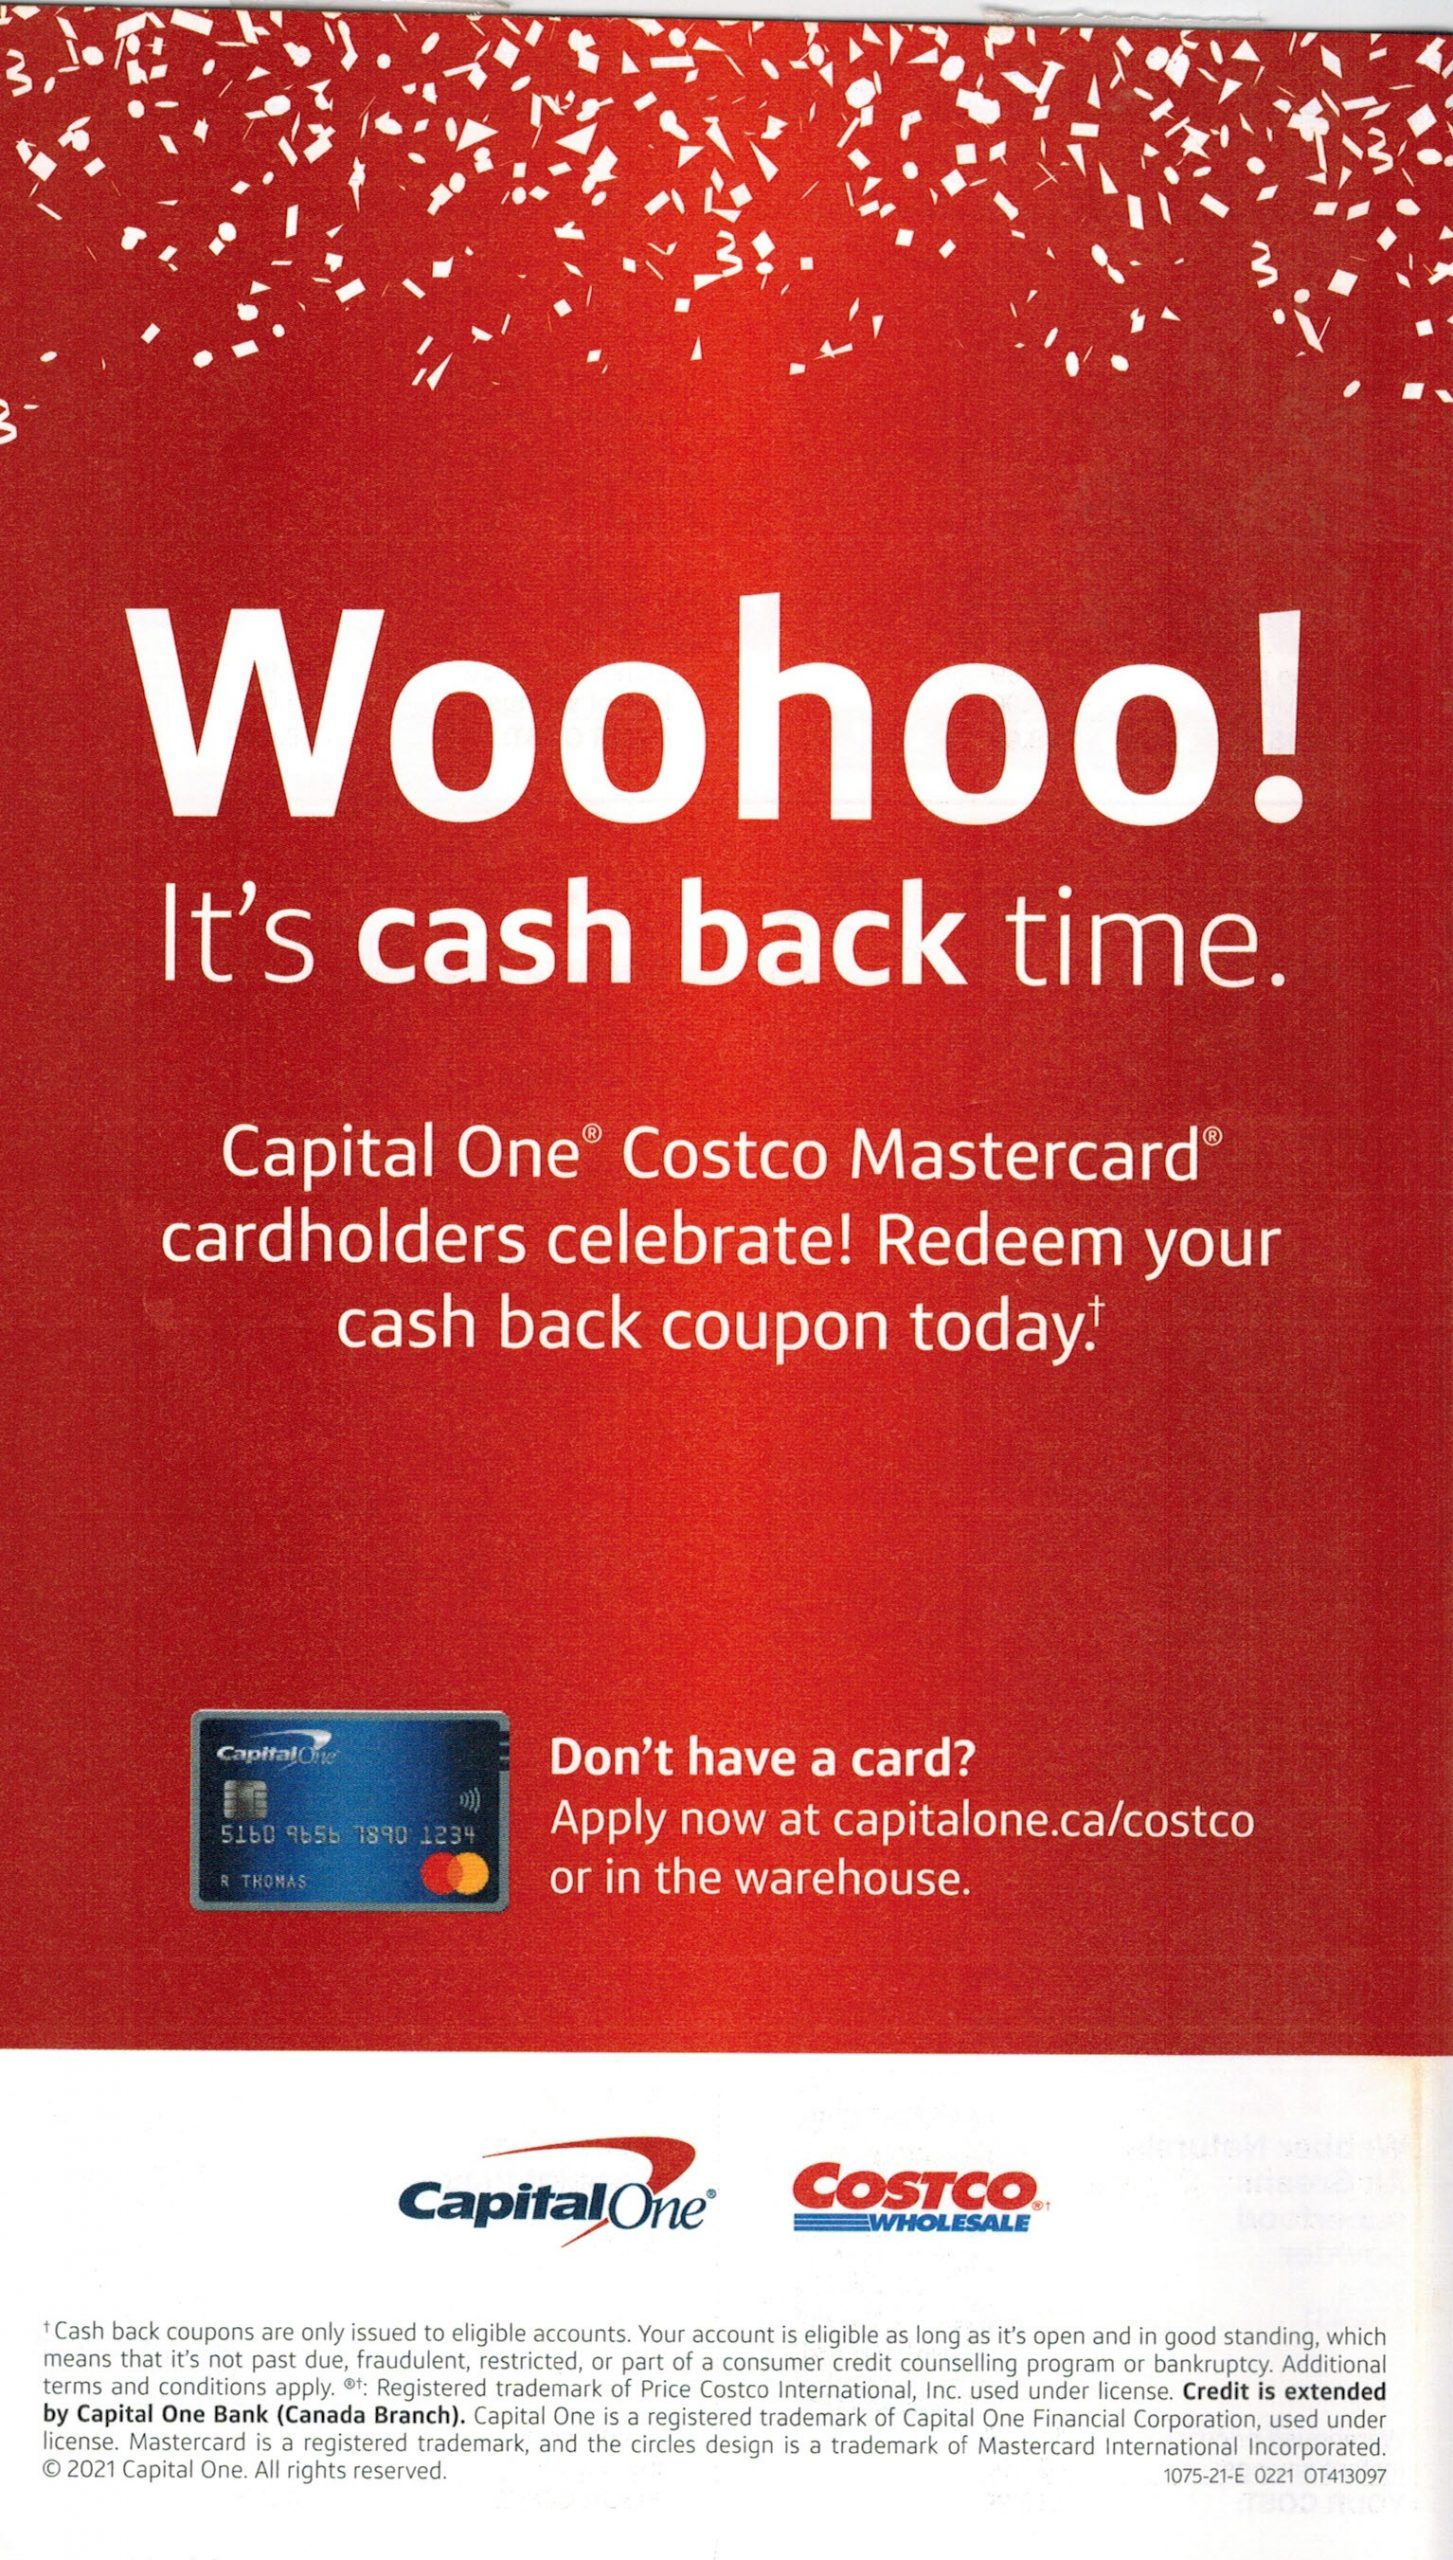 captial one mastercard cash back